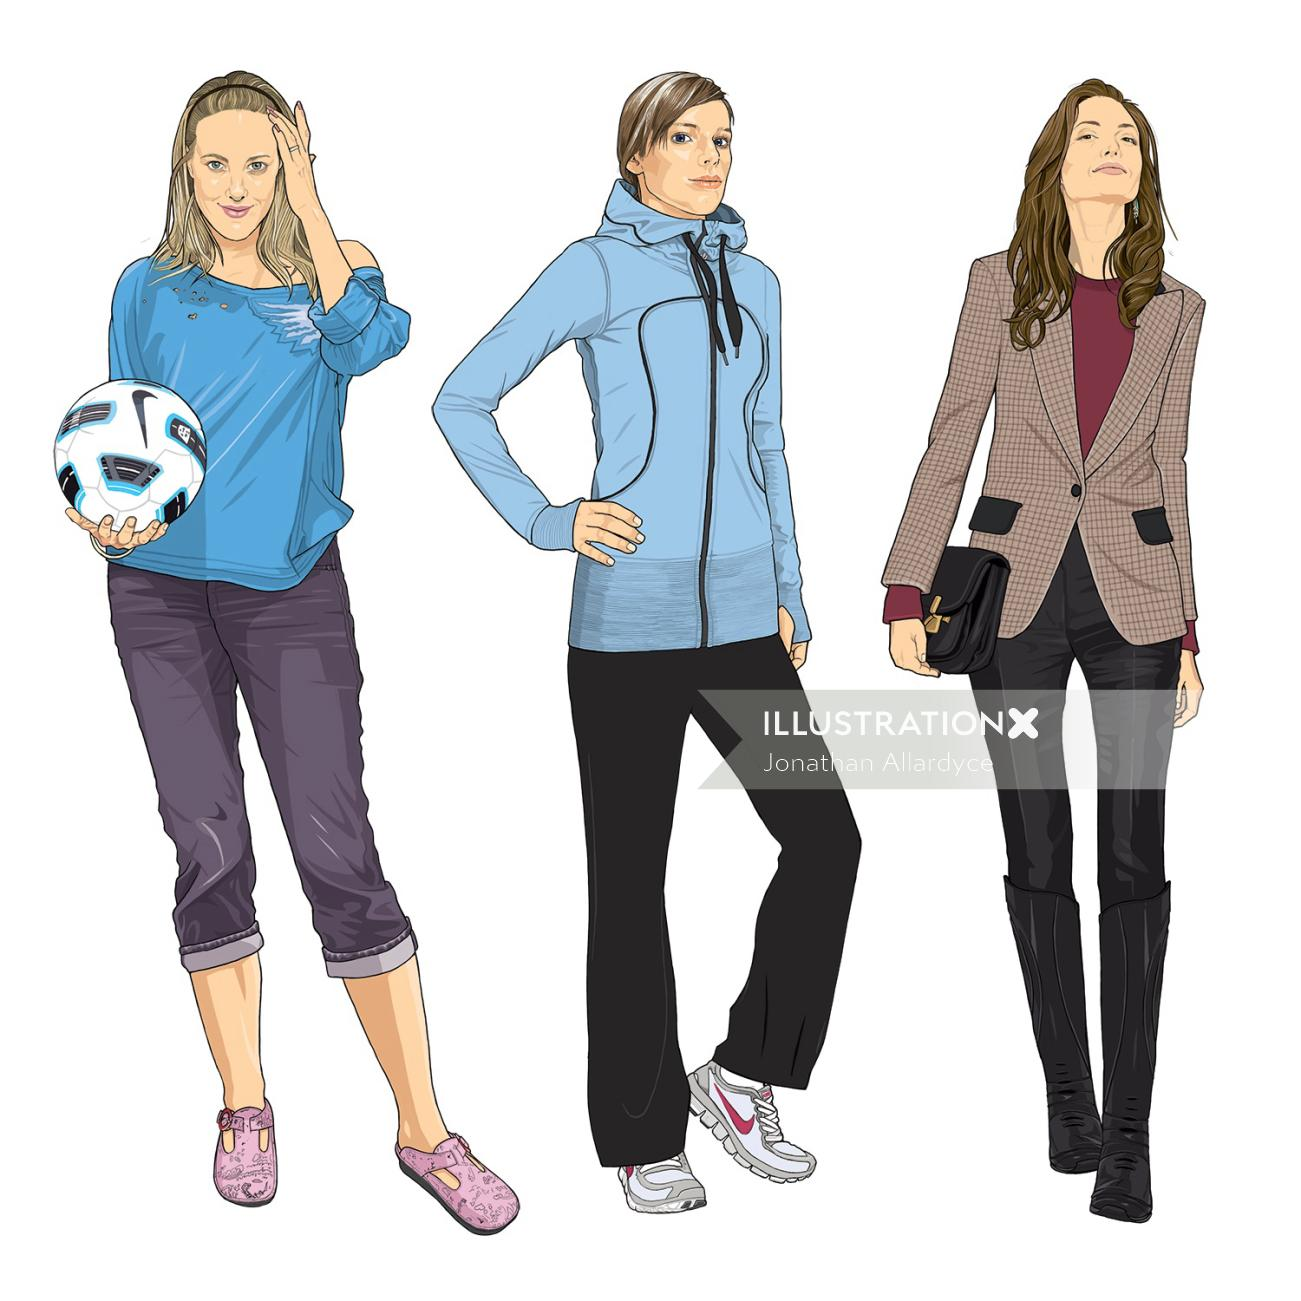 Sports fashion illustration